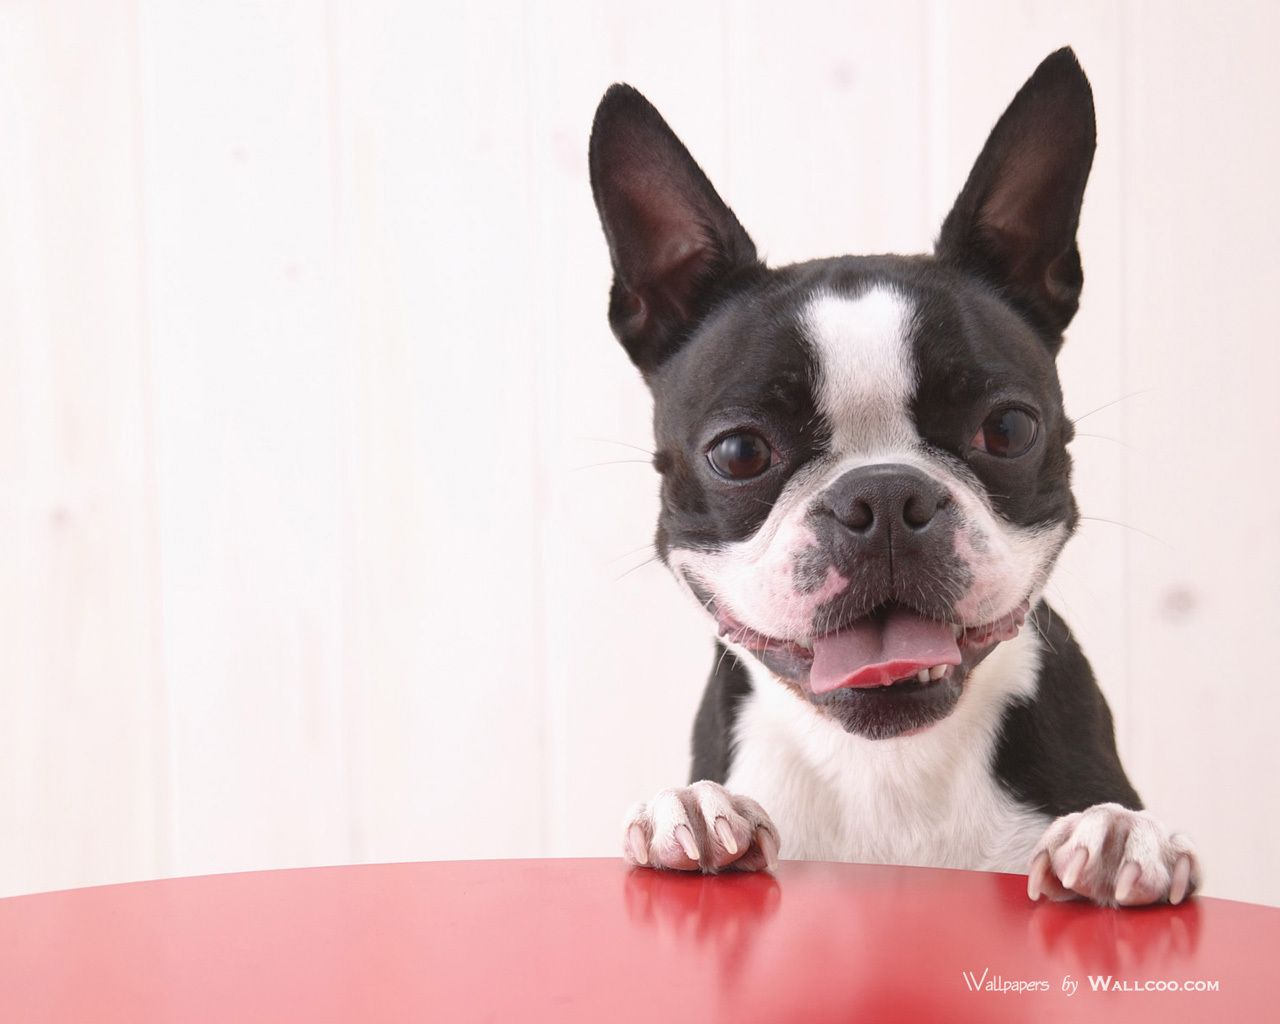 Boston Terrier Wallpapers Wallpaper | HD Wallpapers | Pinterest ...